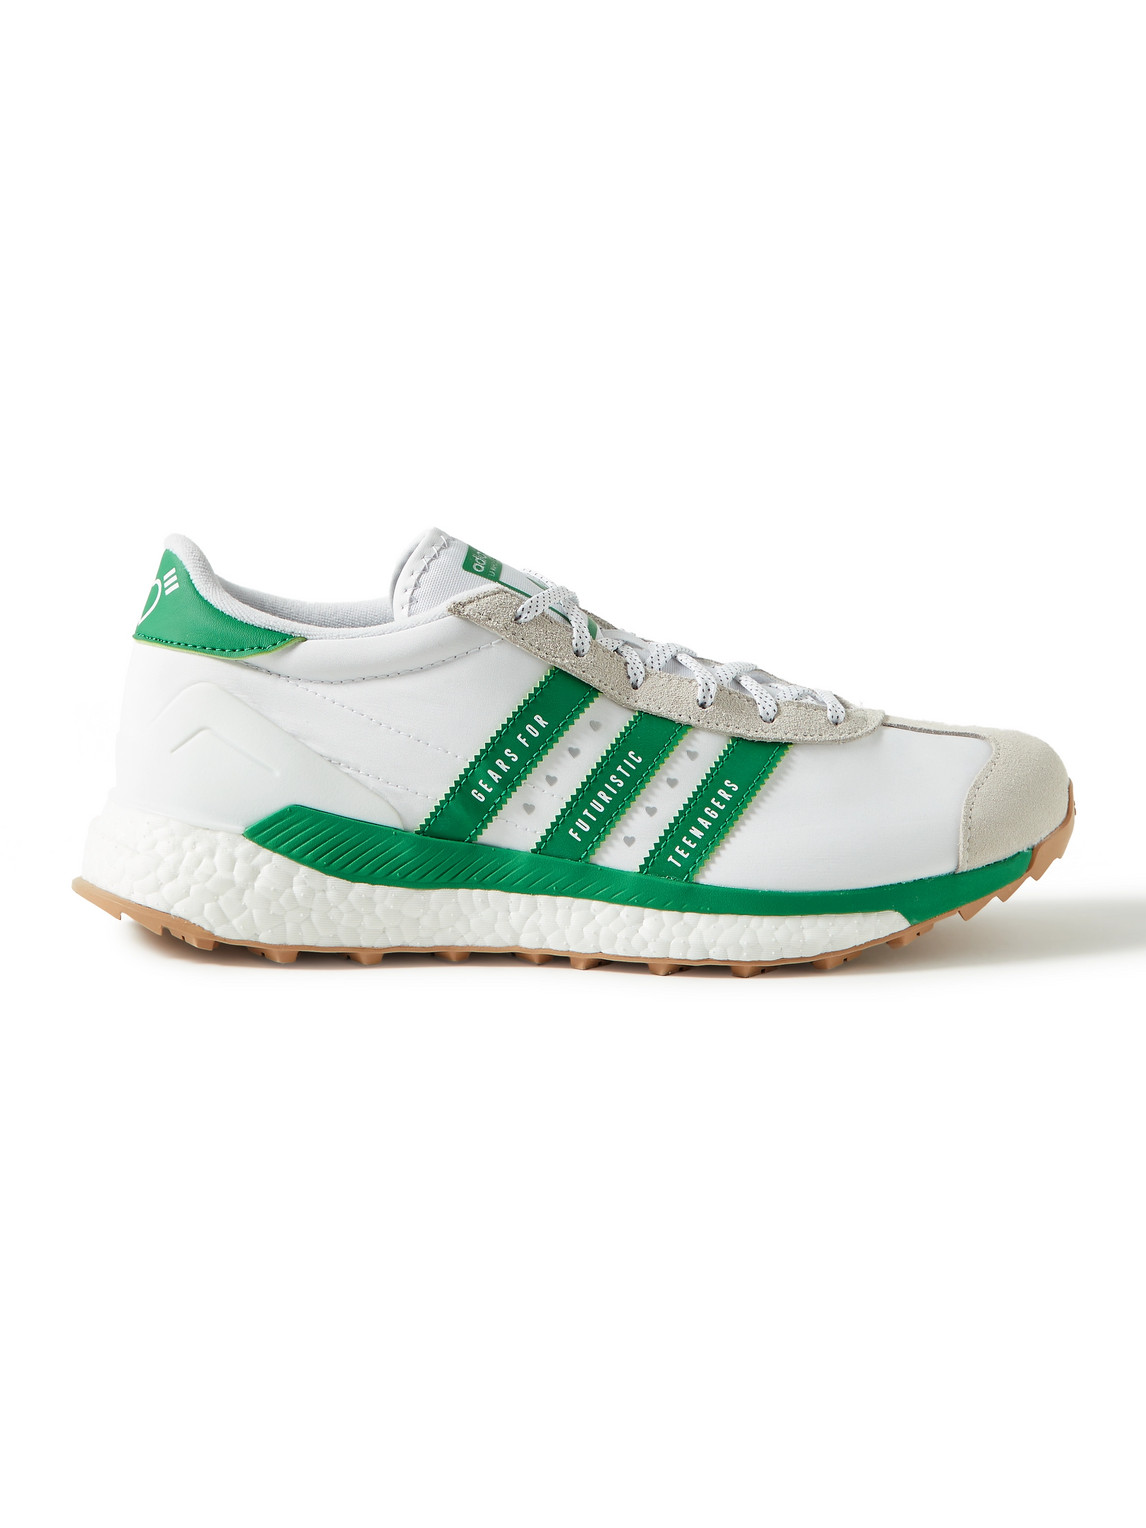 adidas consortium - human made country free hiker suede and leather-trimmed shell sneakers - men - white - uk 5.5